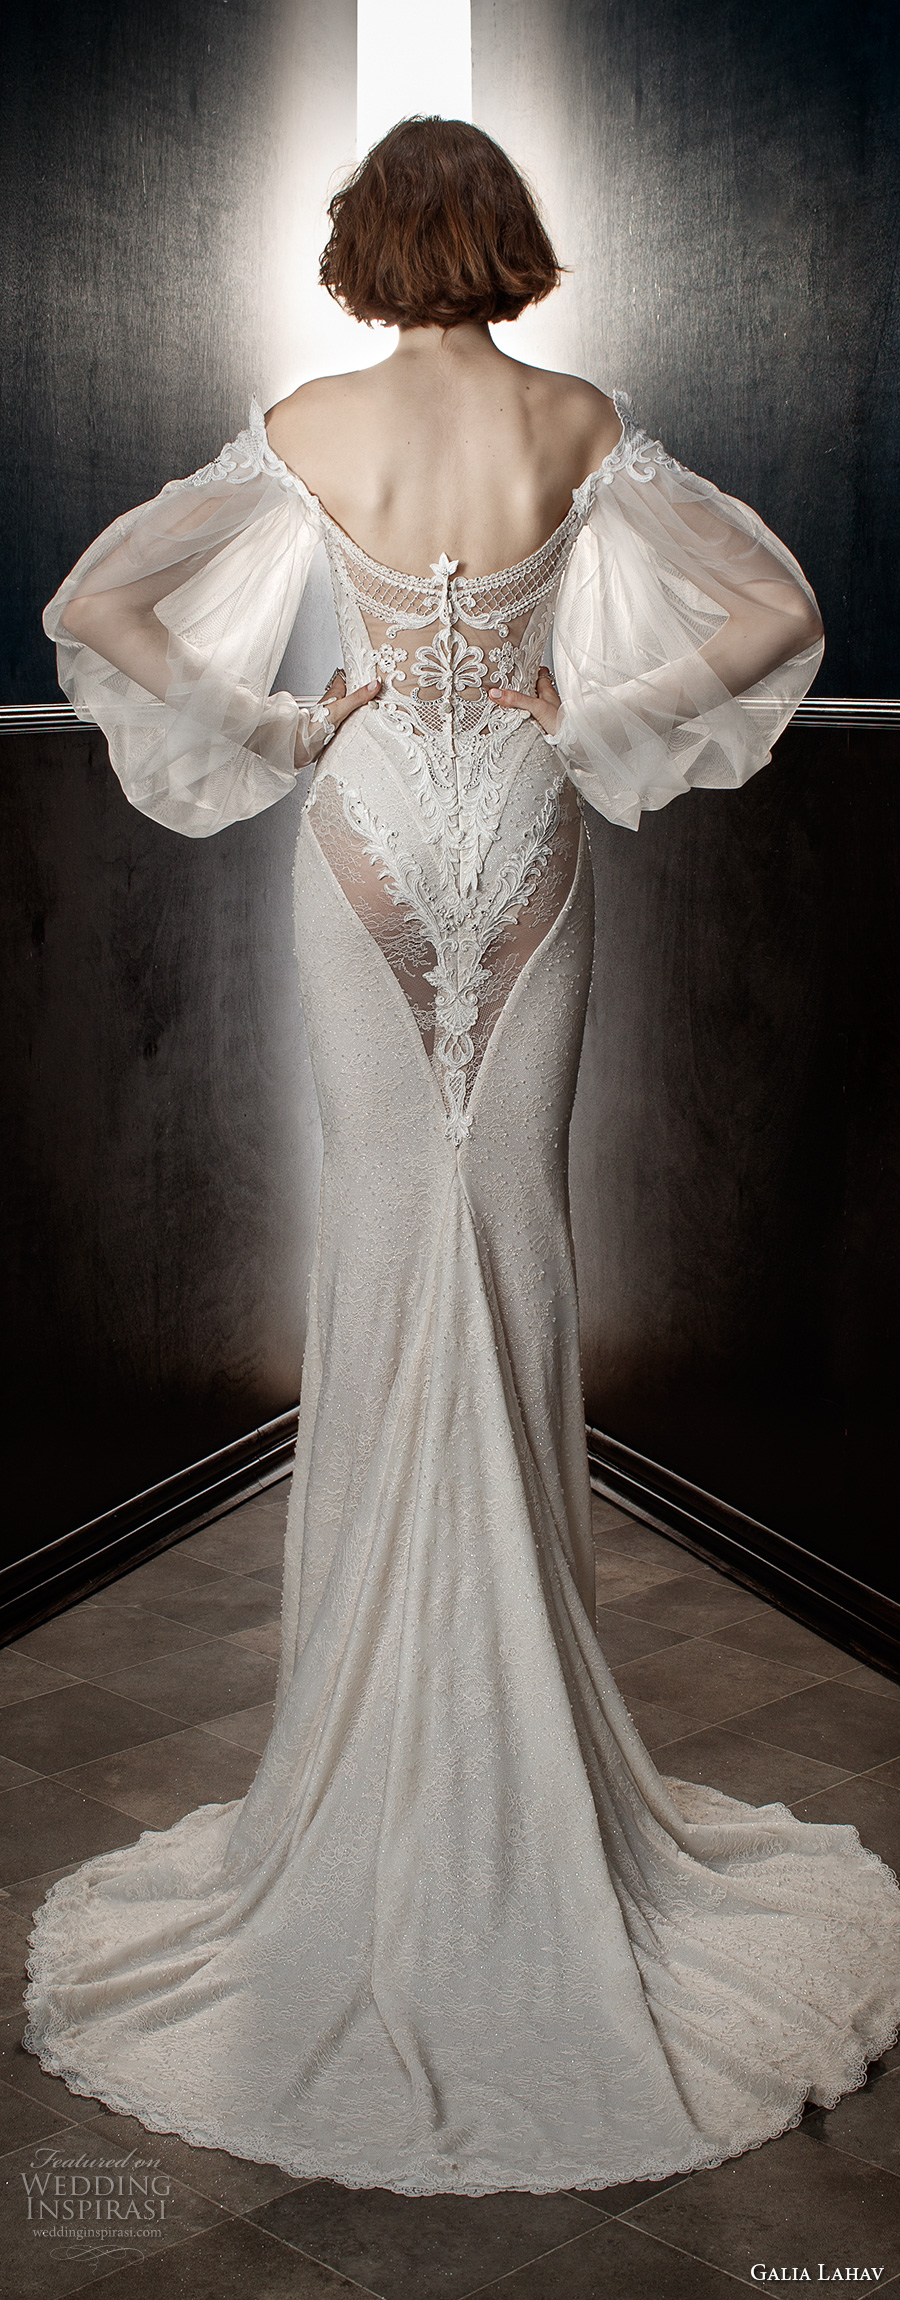 Galia lahav spring 2018 wedding dresses victorian for Wedding dresses to buy off the rack